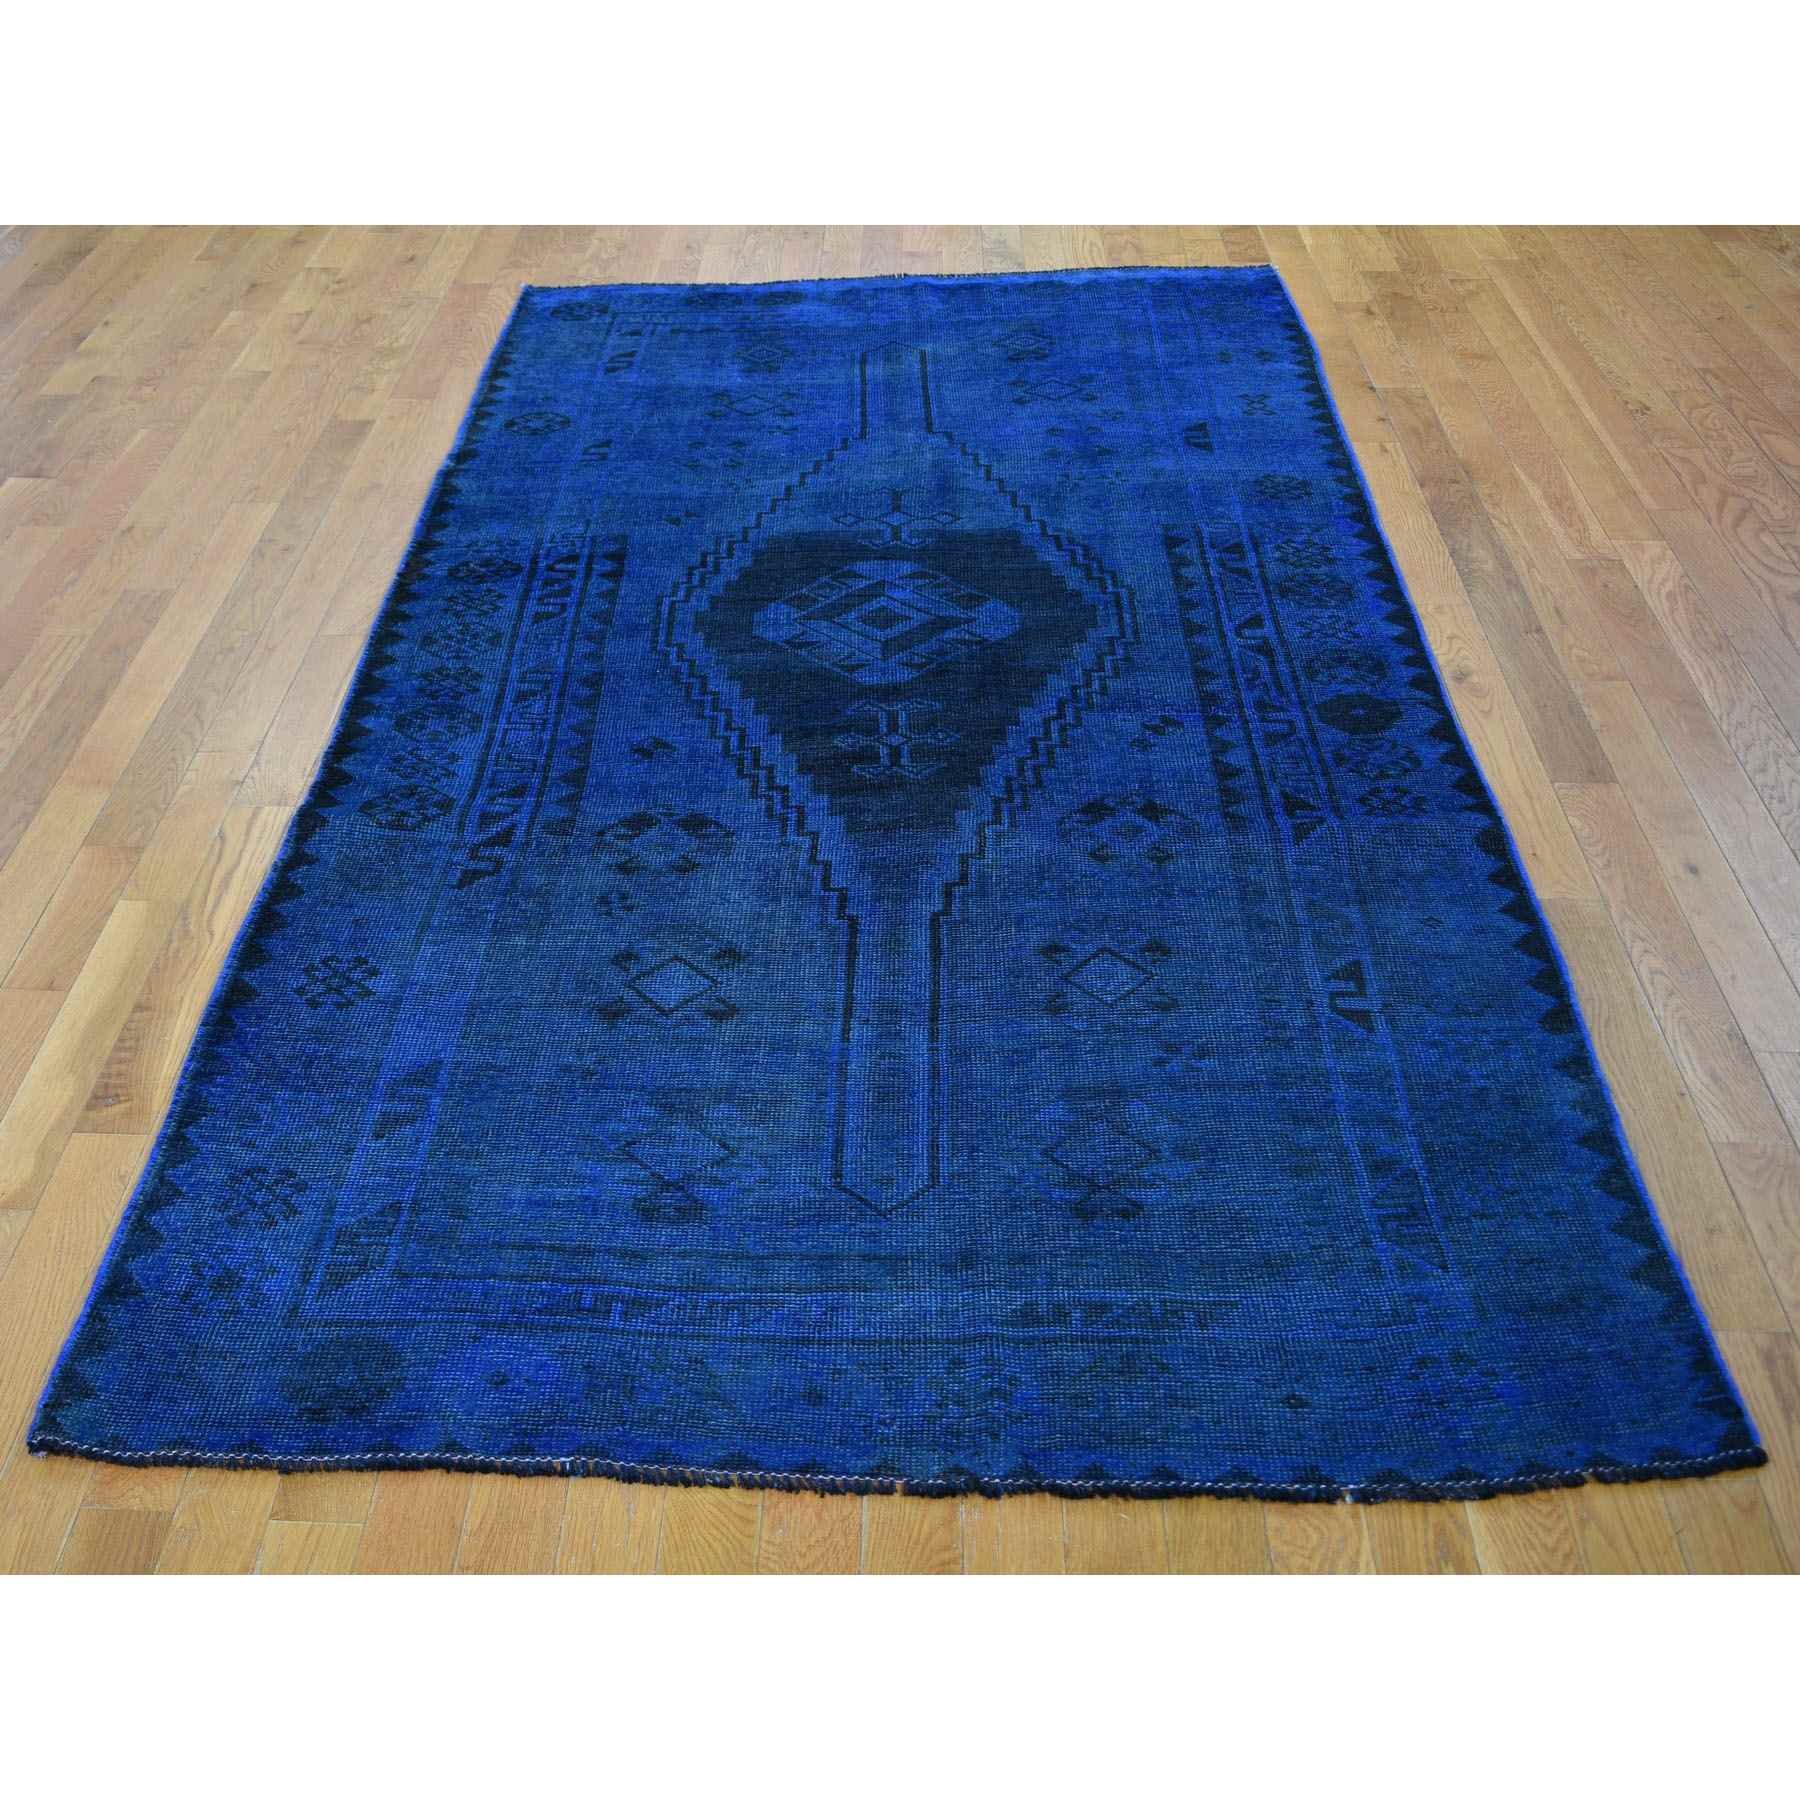 Overdyed-Vintage-Hand-Knotted-Rug-295925